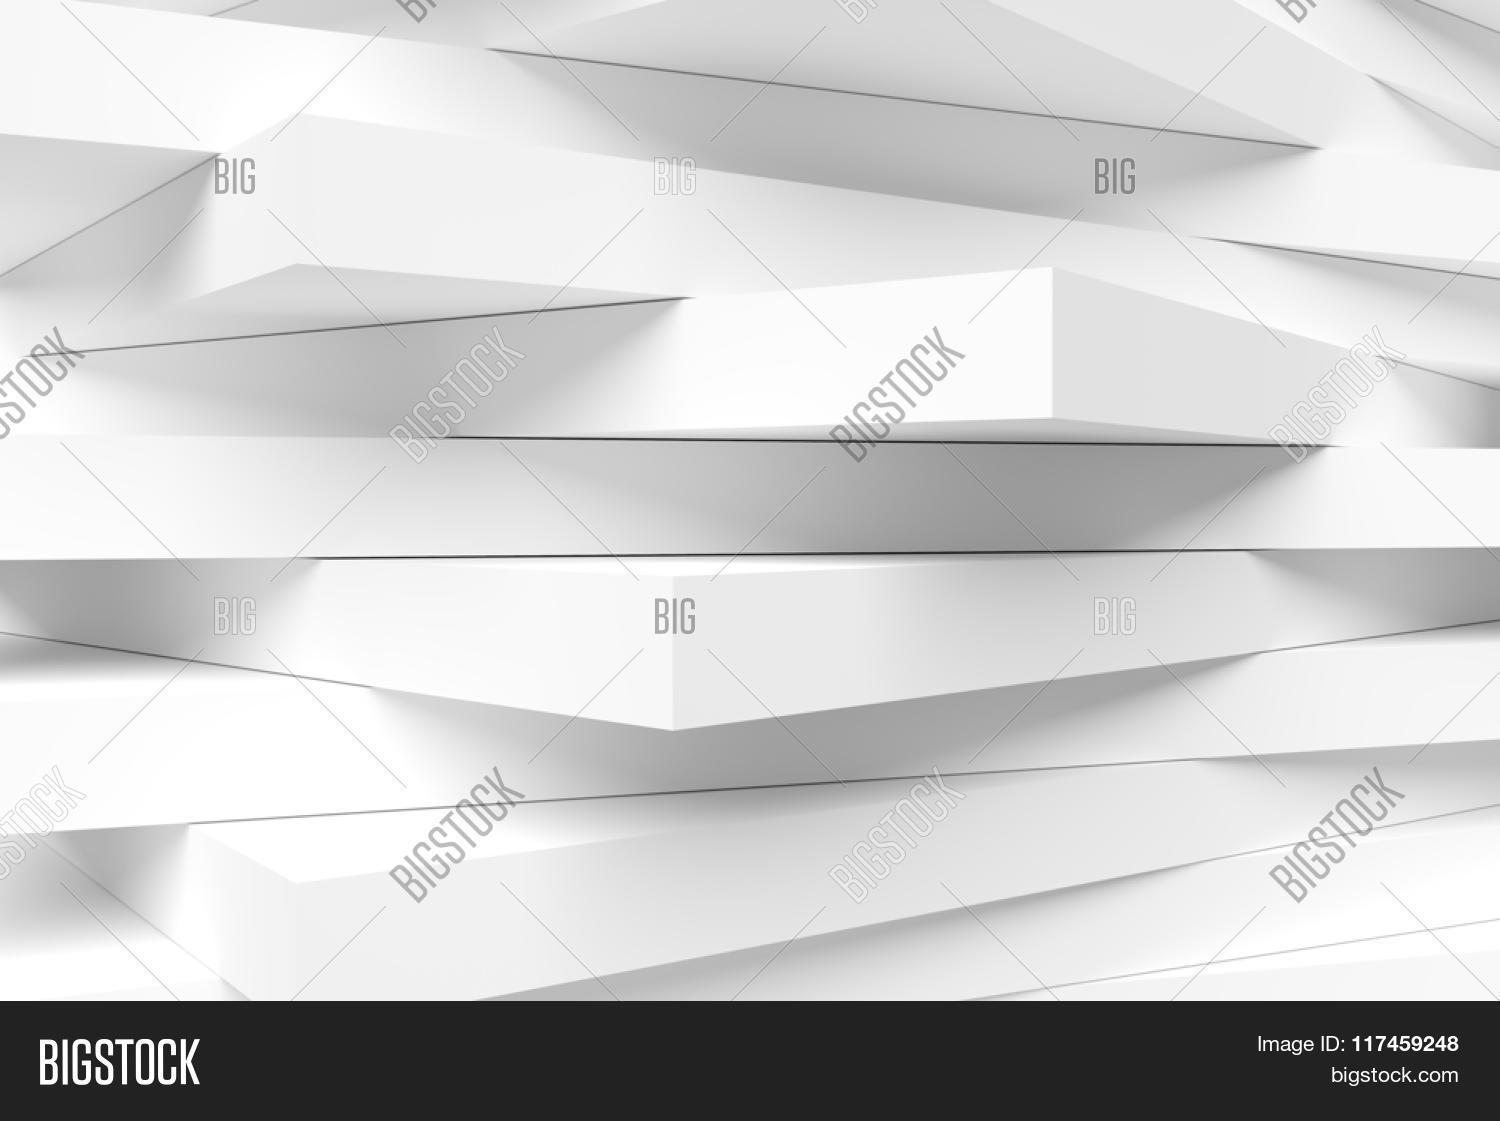 3d abstract architectural design - photo #34